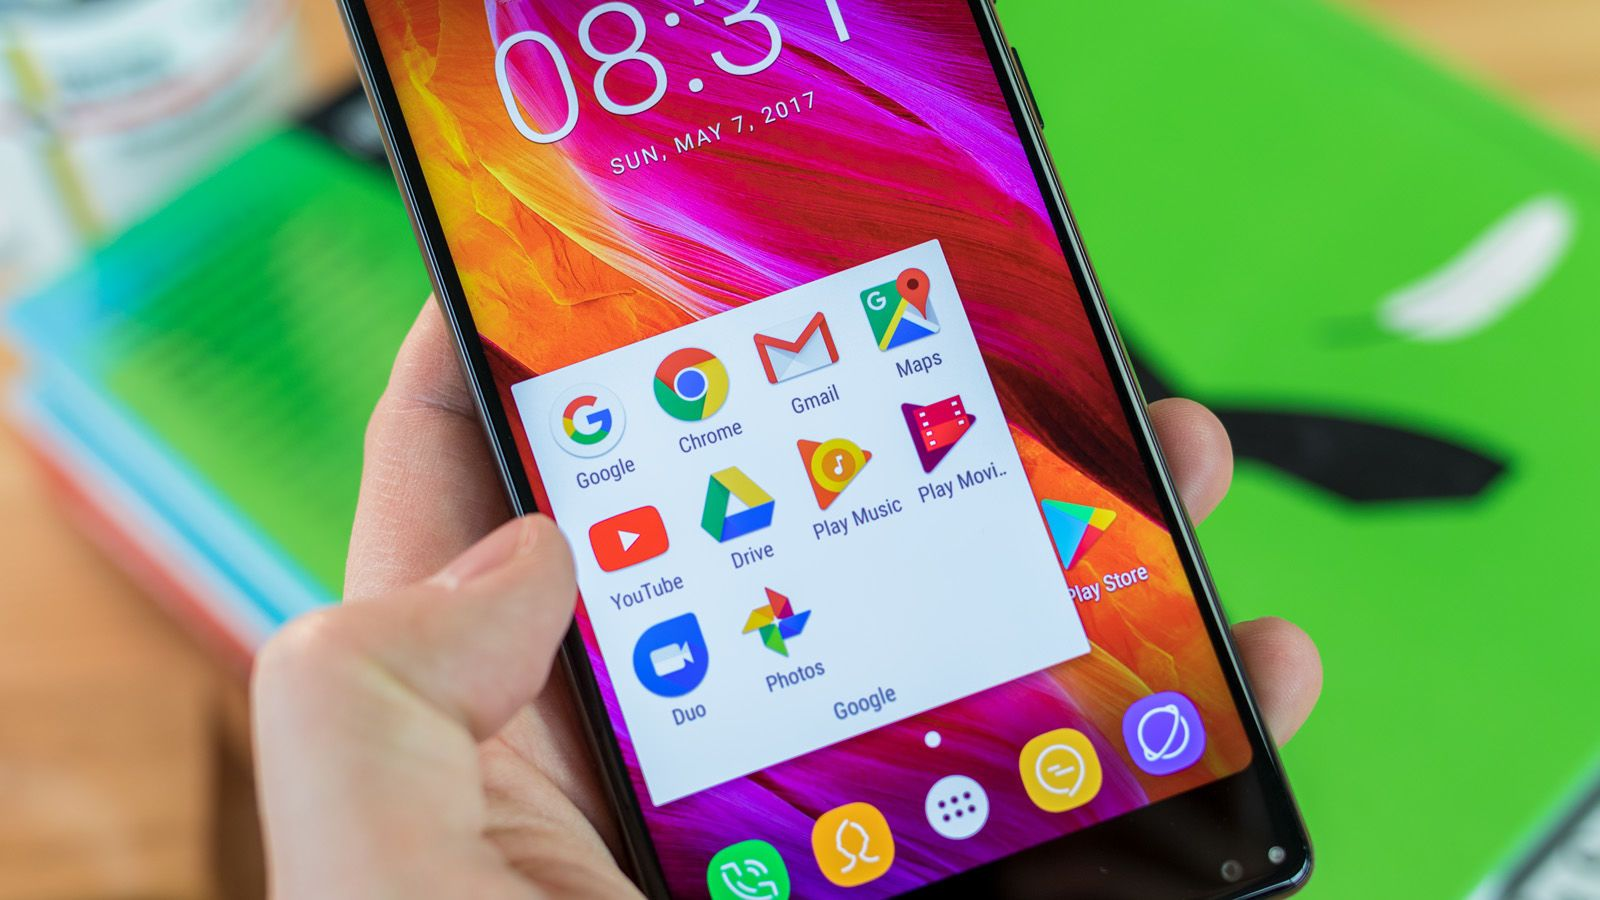 Oukitel Mix 2 Smartphone ReviewOukitel's Mix 2 is a bulky